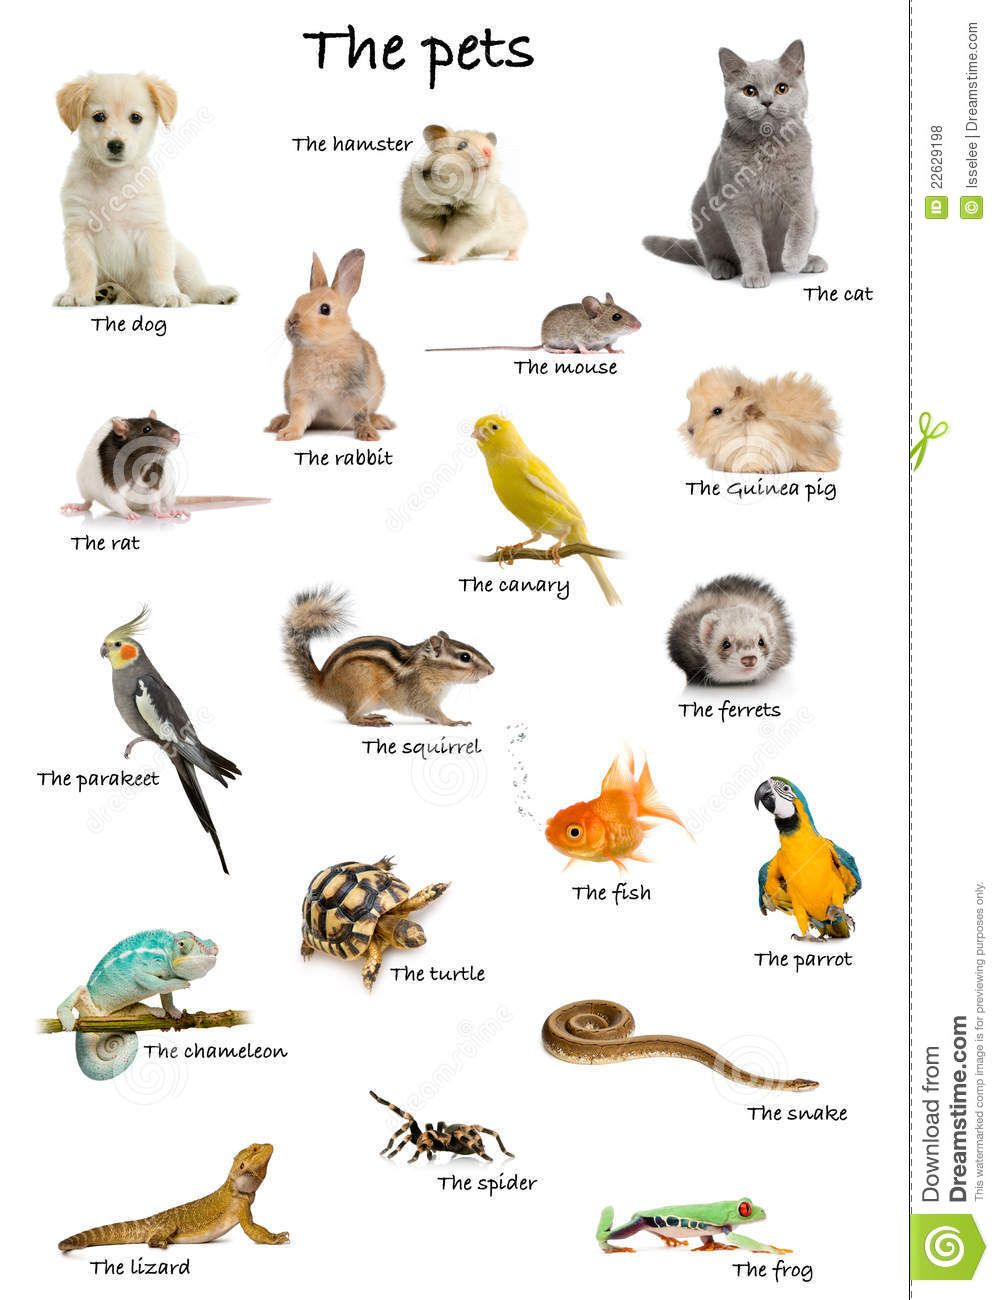 Collage Of Pets And Animals In English Royalty Free Stock Photos Image 22629198 English Vocabulary Learn English Vocabulary English Language Learning